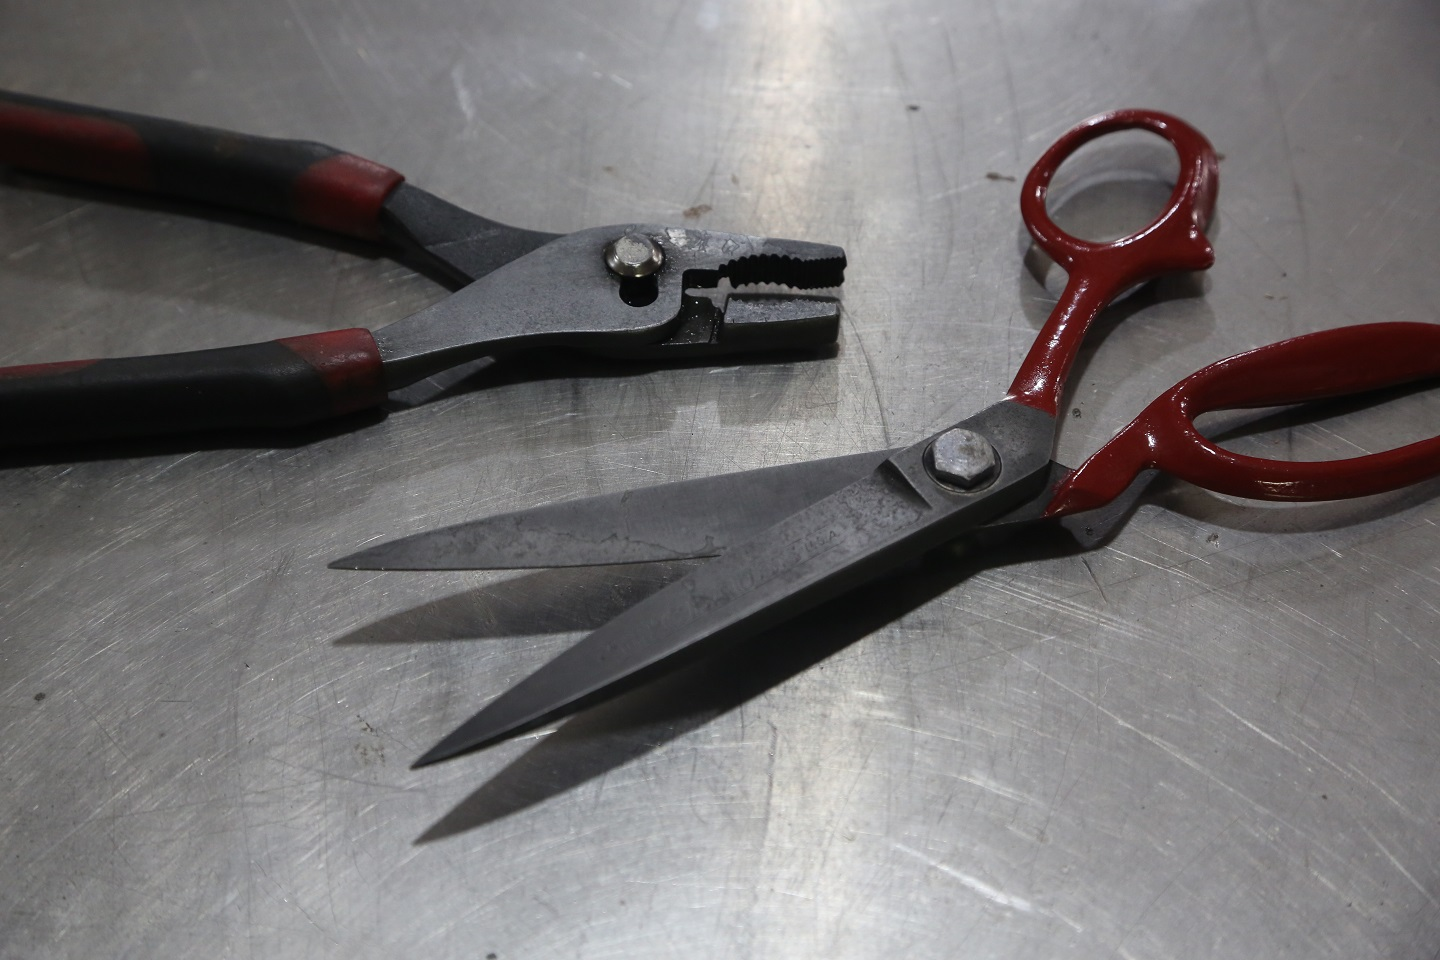 We took this opportunity to through a new coat of paint on the vintage Clauss upholstery scissors. Now they are ready to chop up some leather, stain-free